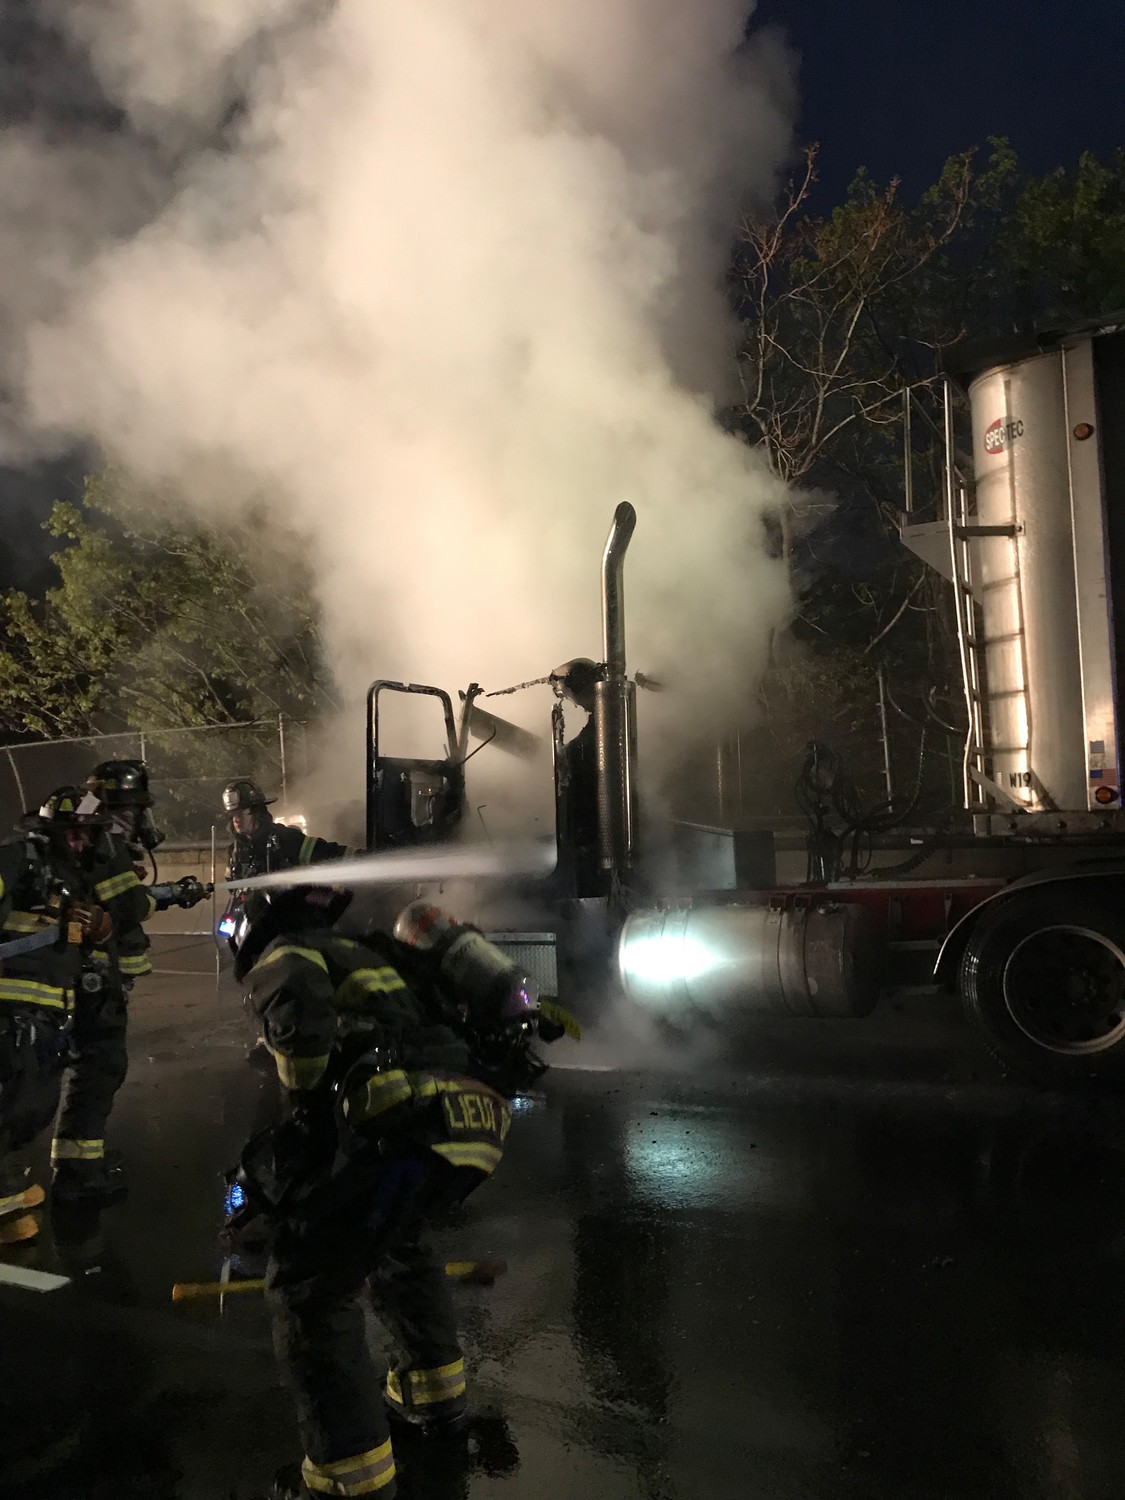 Wantagh firefighters extinguished a blaze on Sunrise Highway minutes before the sun rose on May 14. There were no injuries reported.